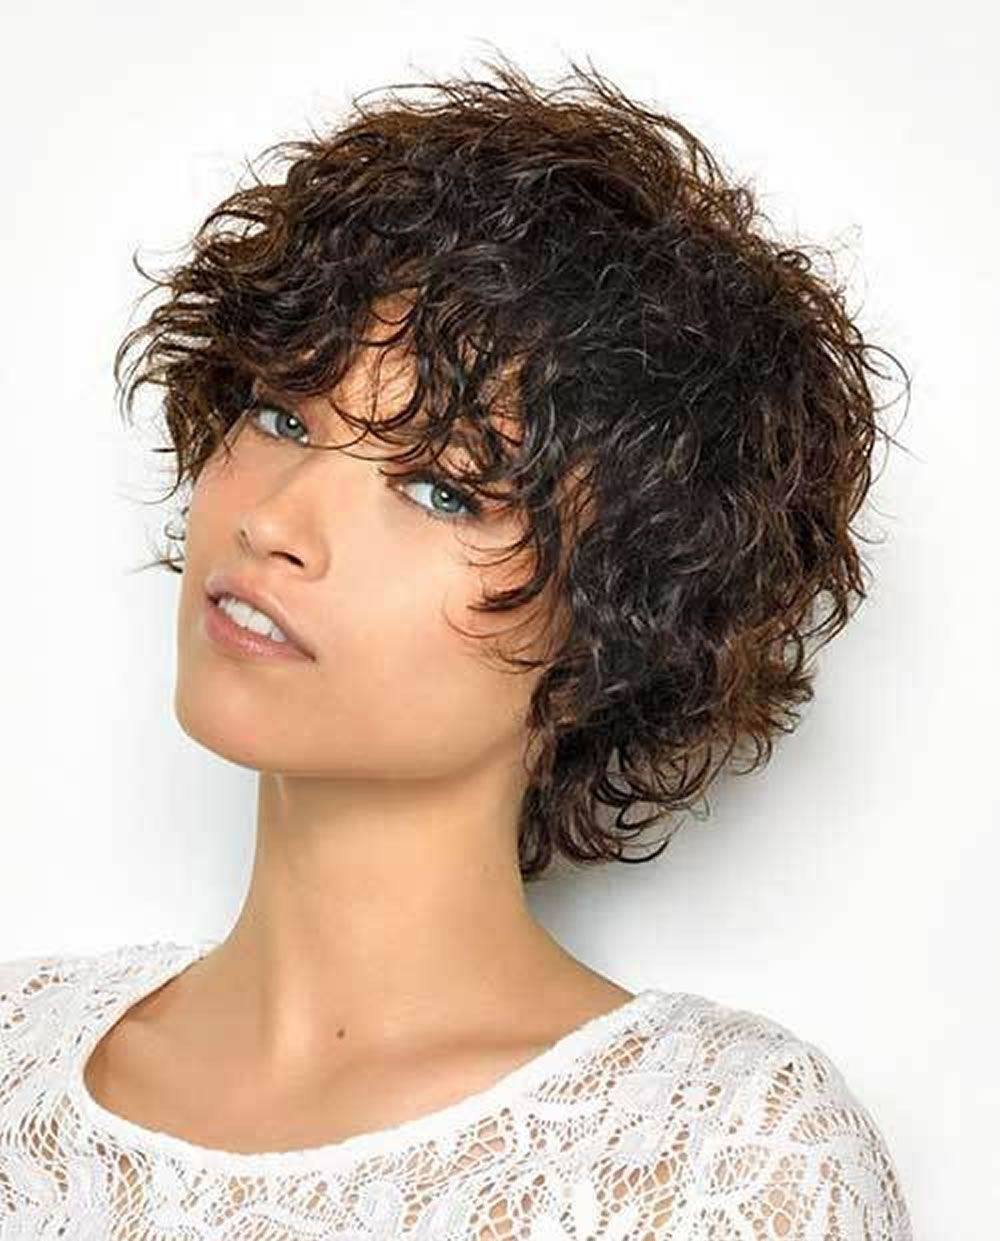 15 Effective Styles for Short Curly Hair